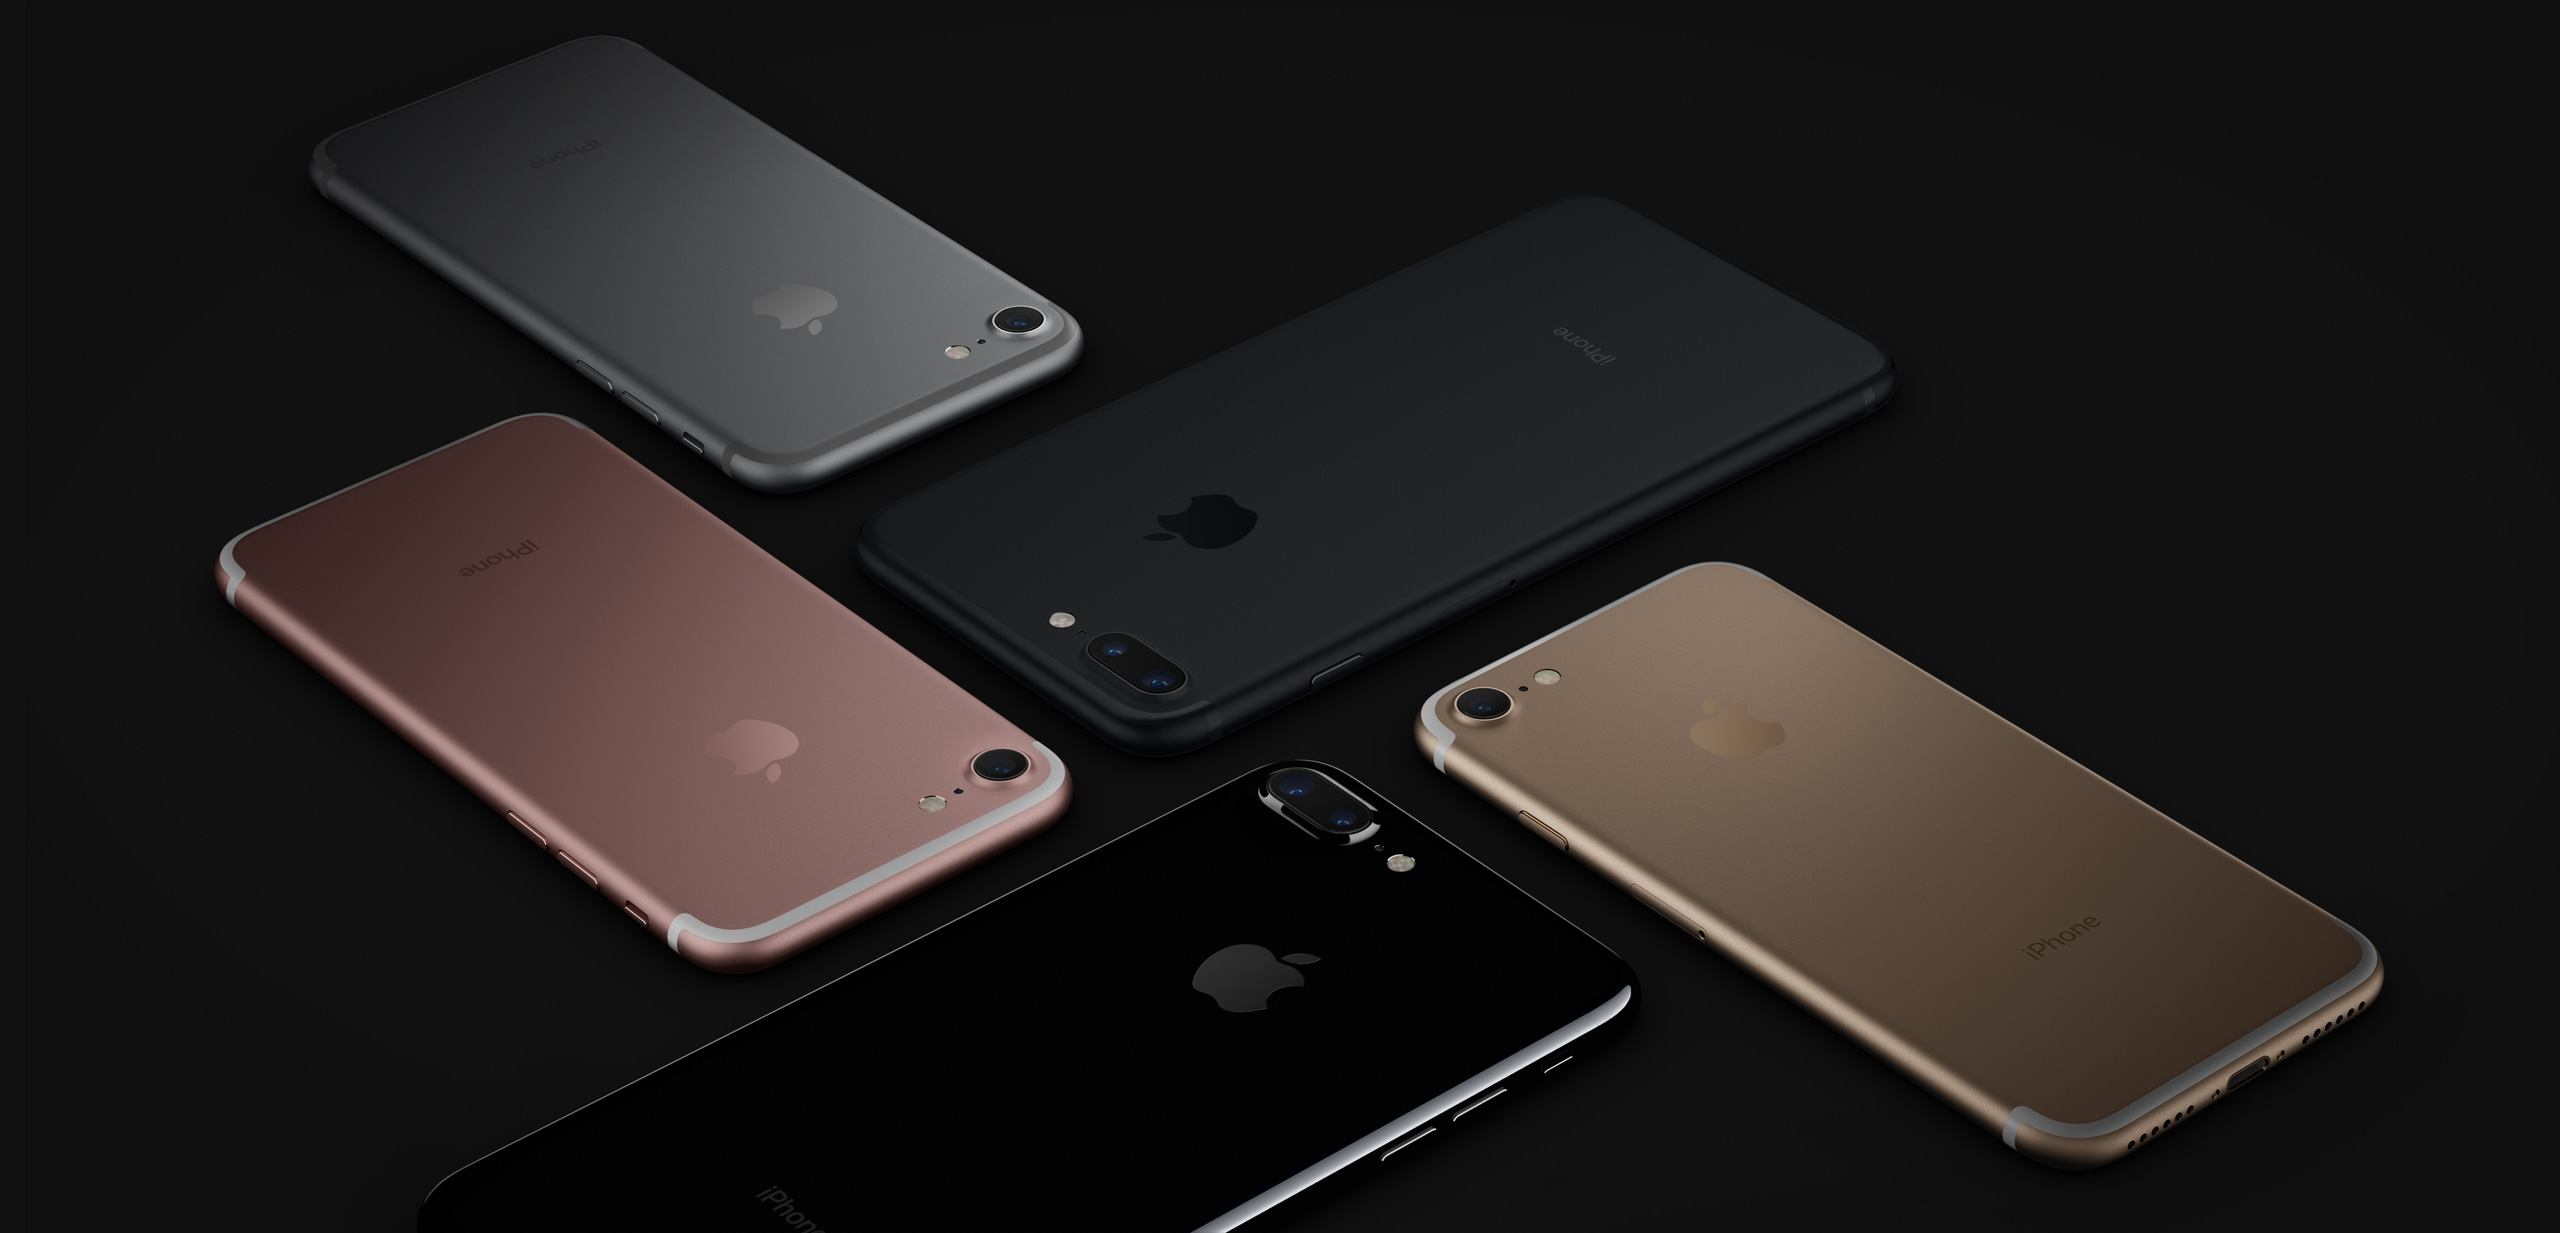 apple-2016-iphone-7-and-7-plus-event-photo-34